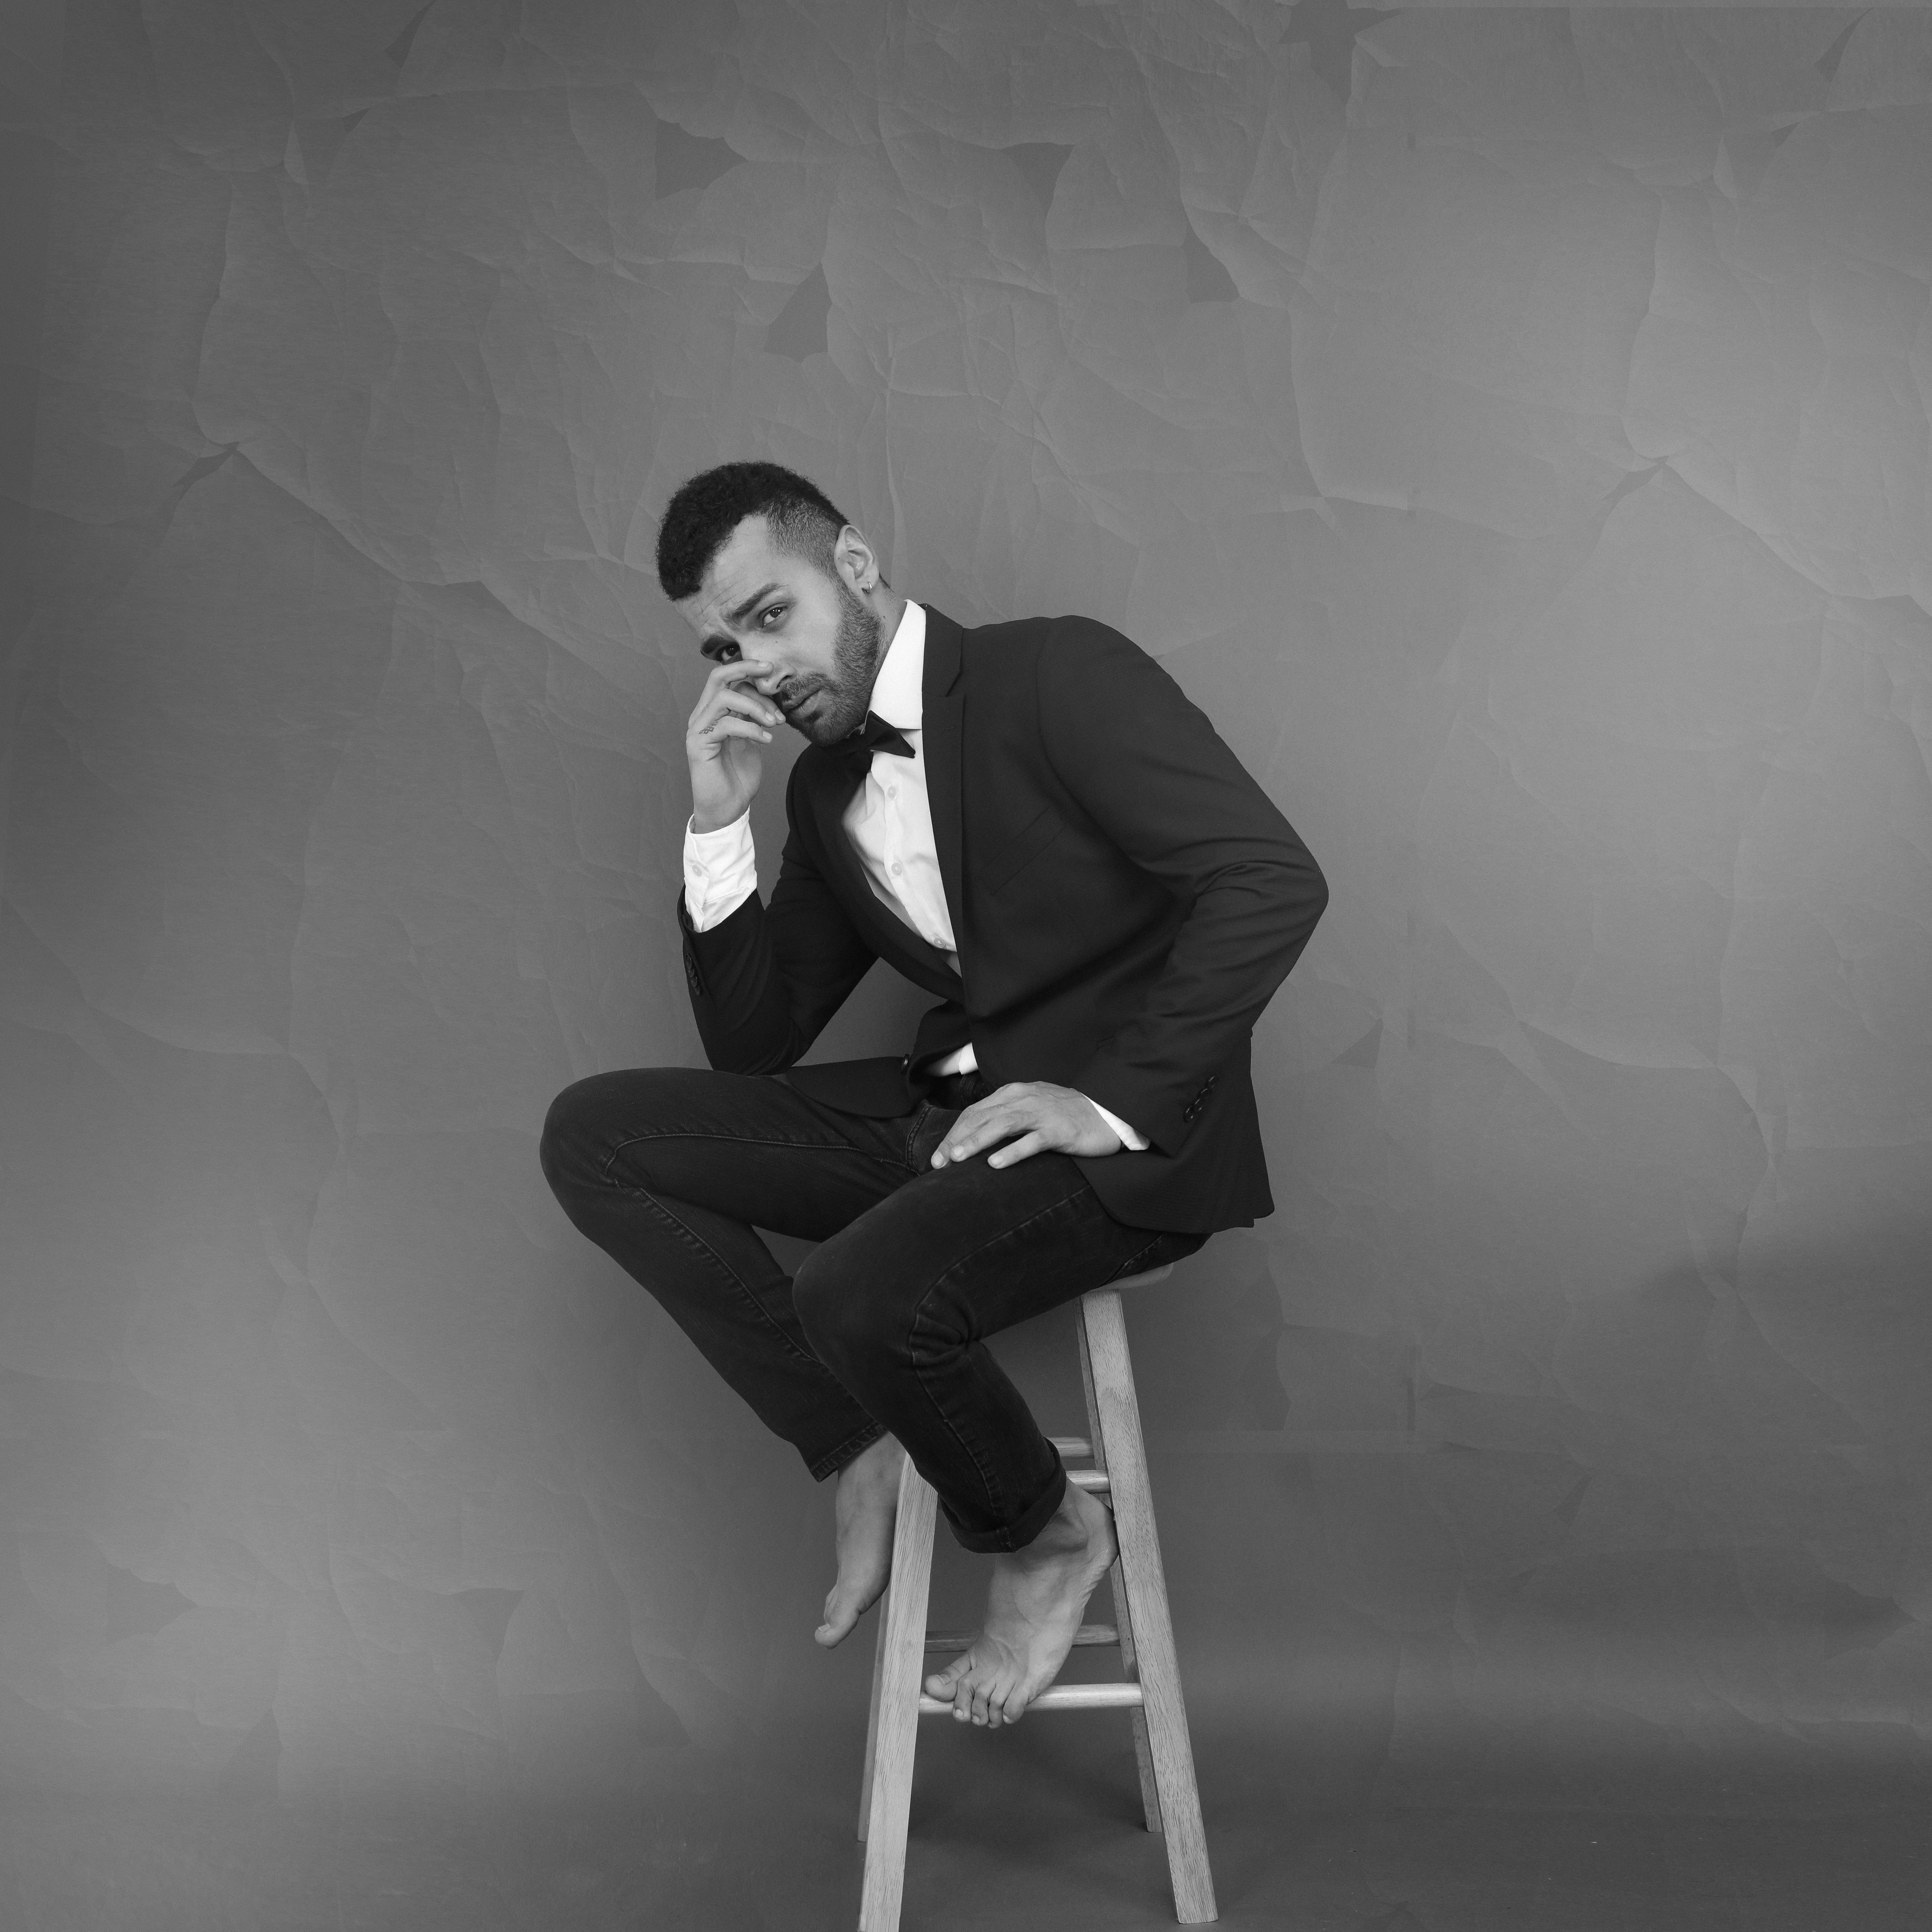 Monochrome Photography of Guy Sitting on Chair, Adult, Man, Suit, Stool, HQ Photo